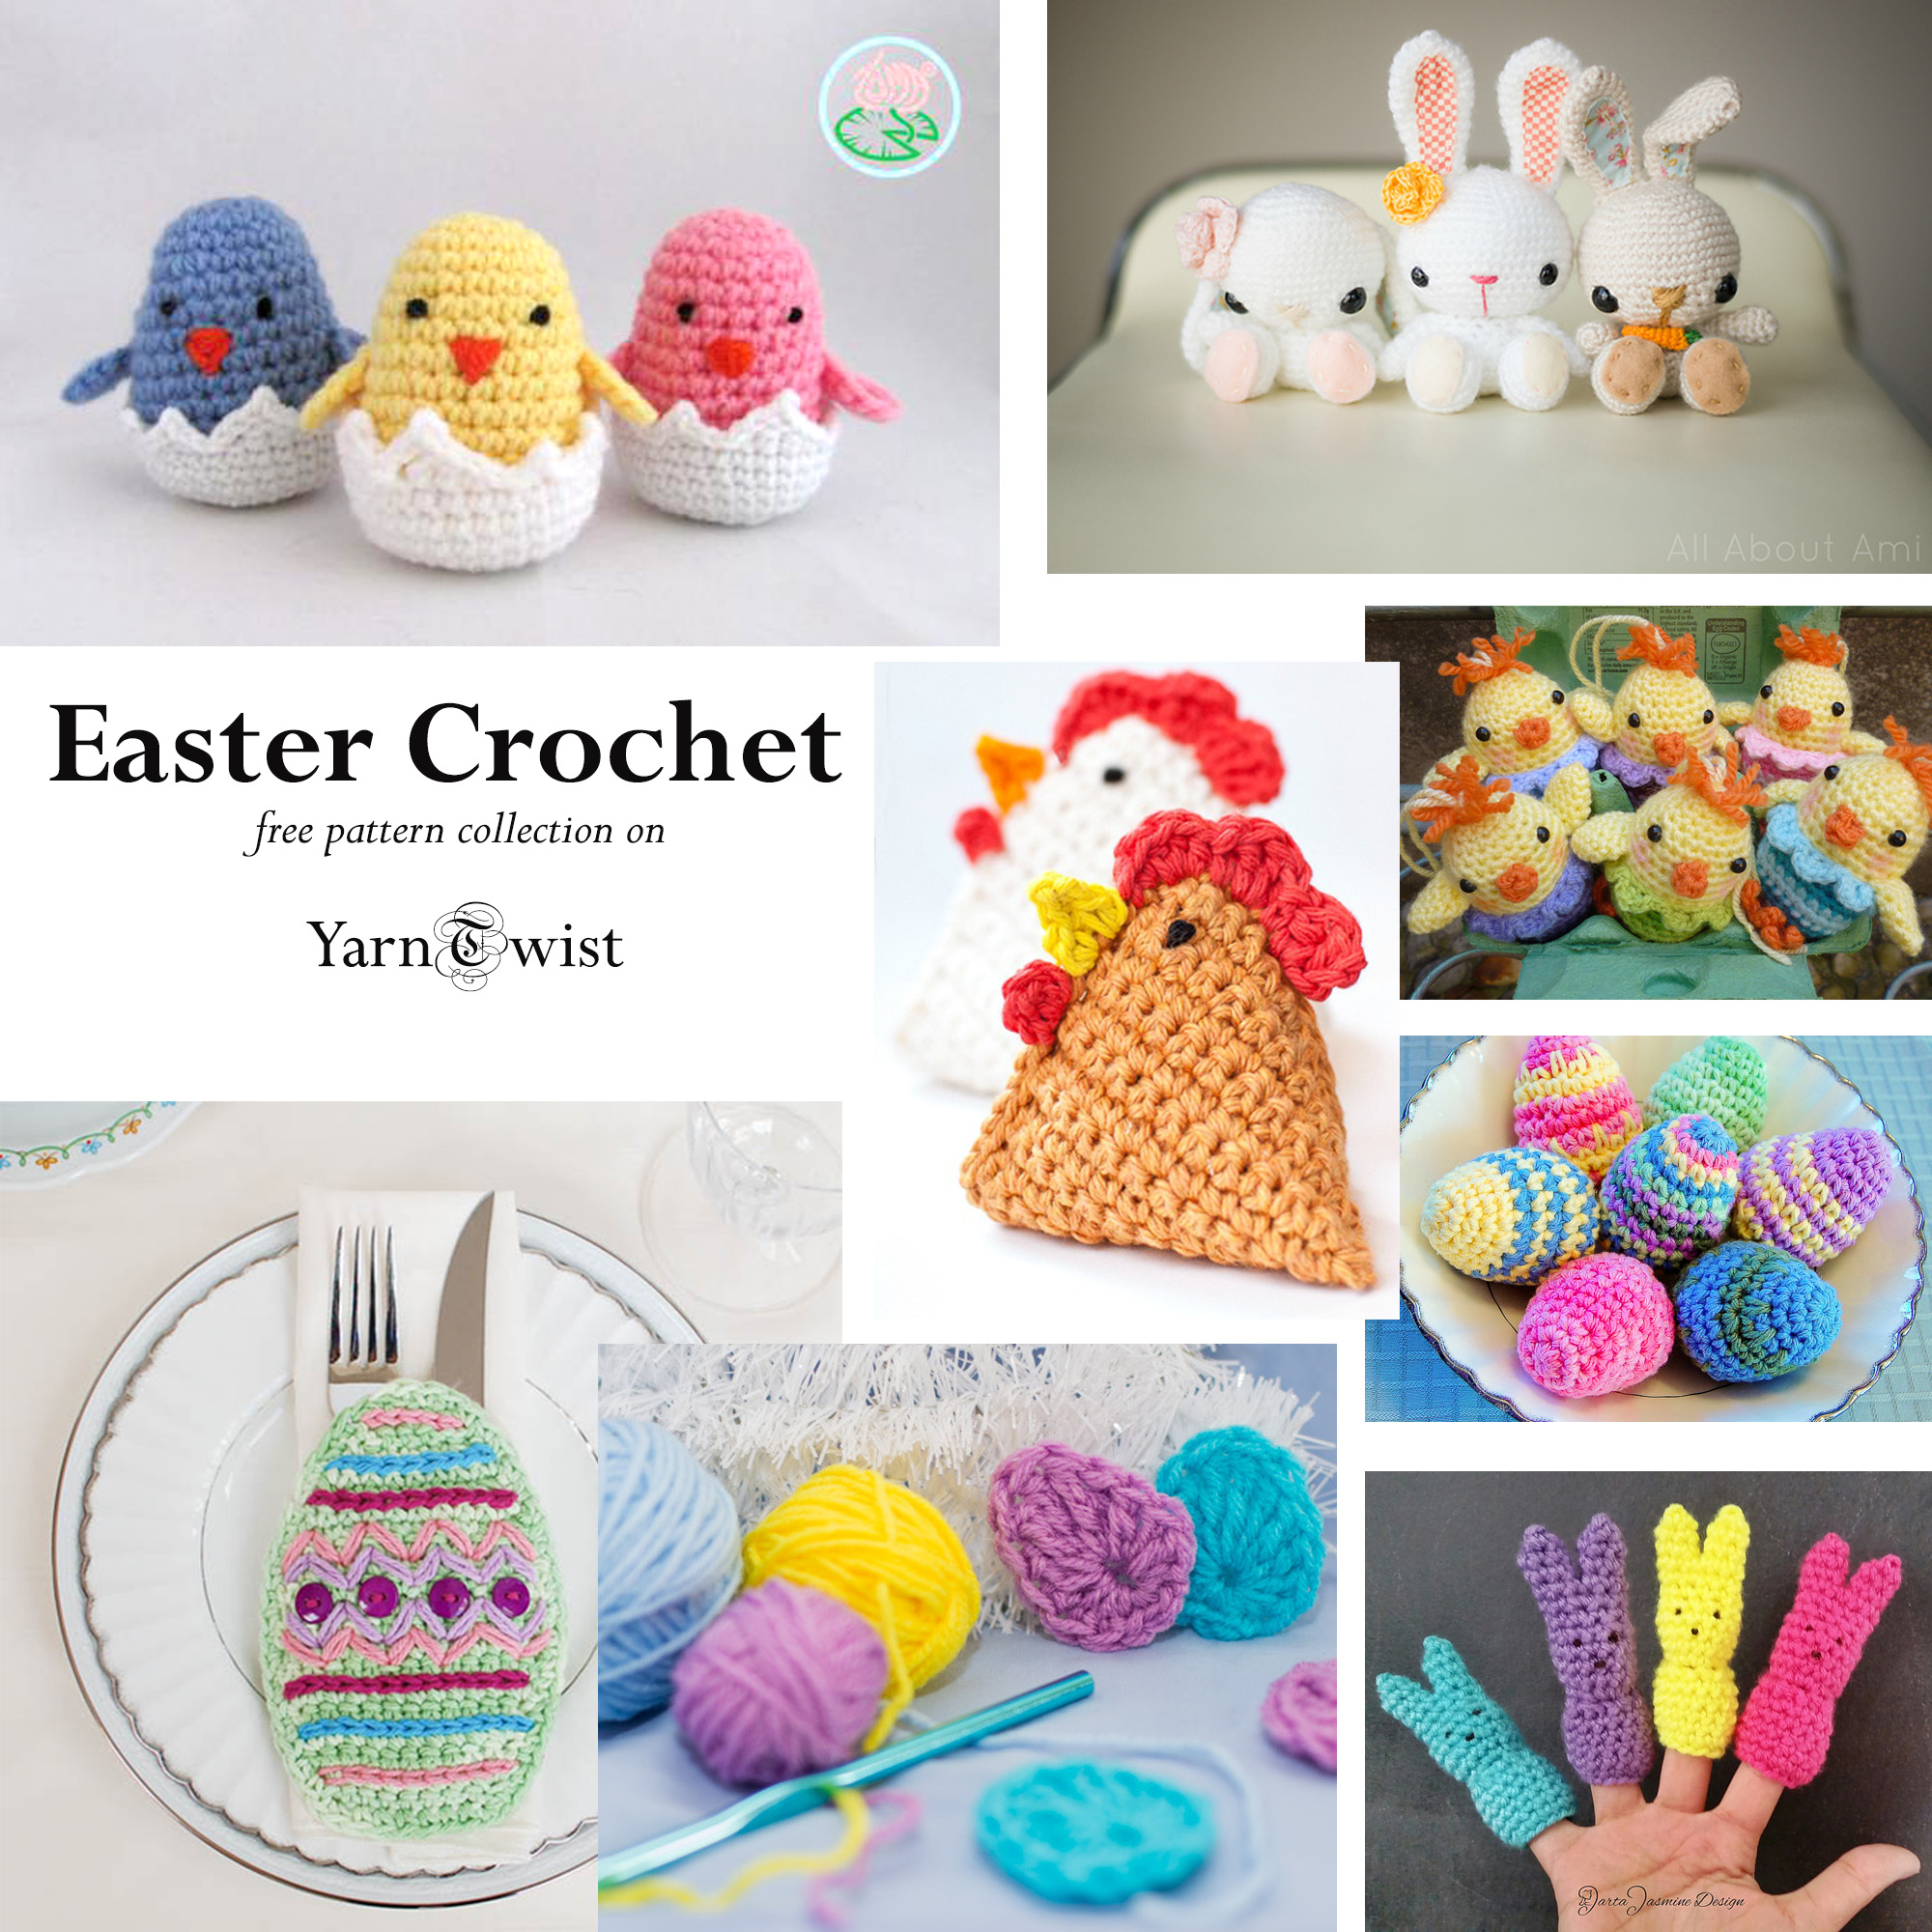 Free Collection of Easter Crochet Patterns – Yarn Twist